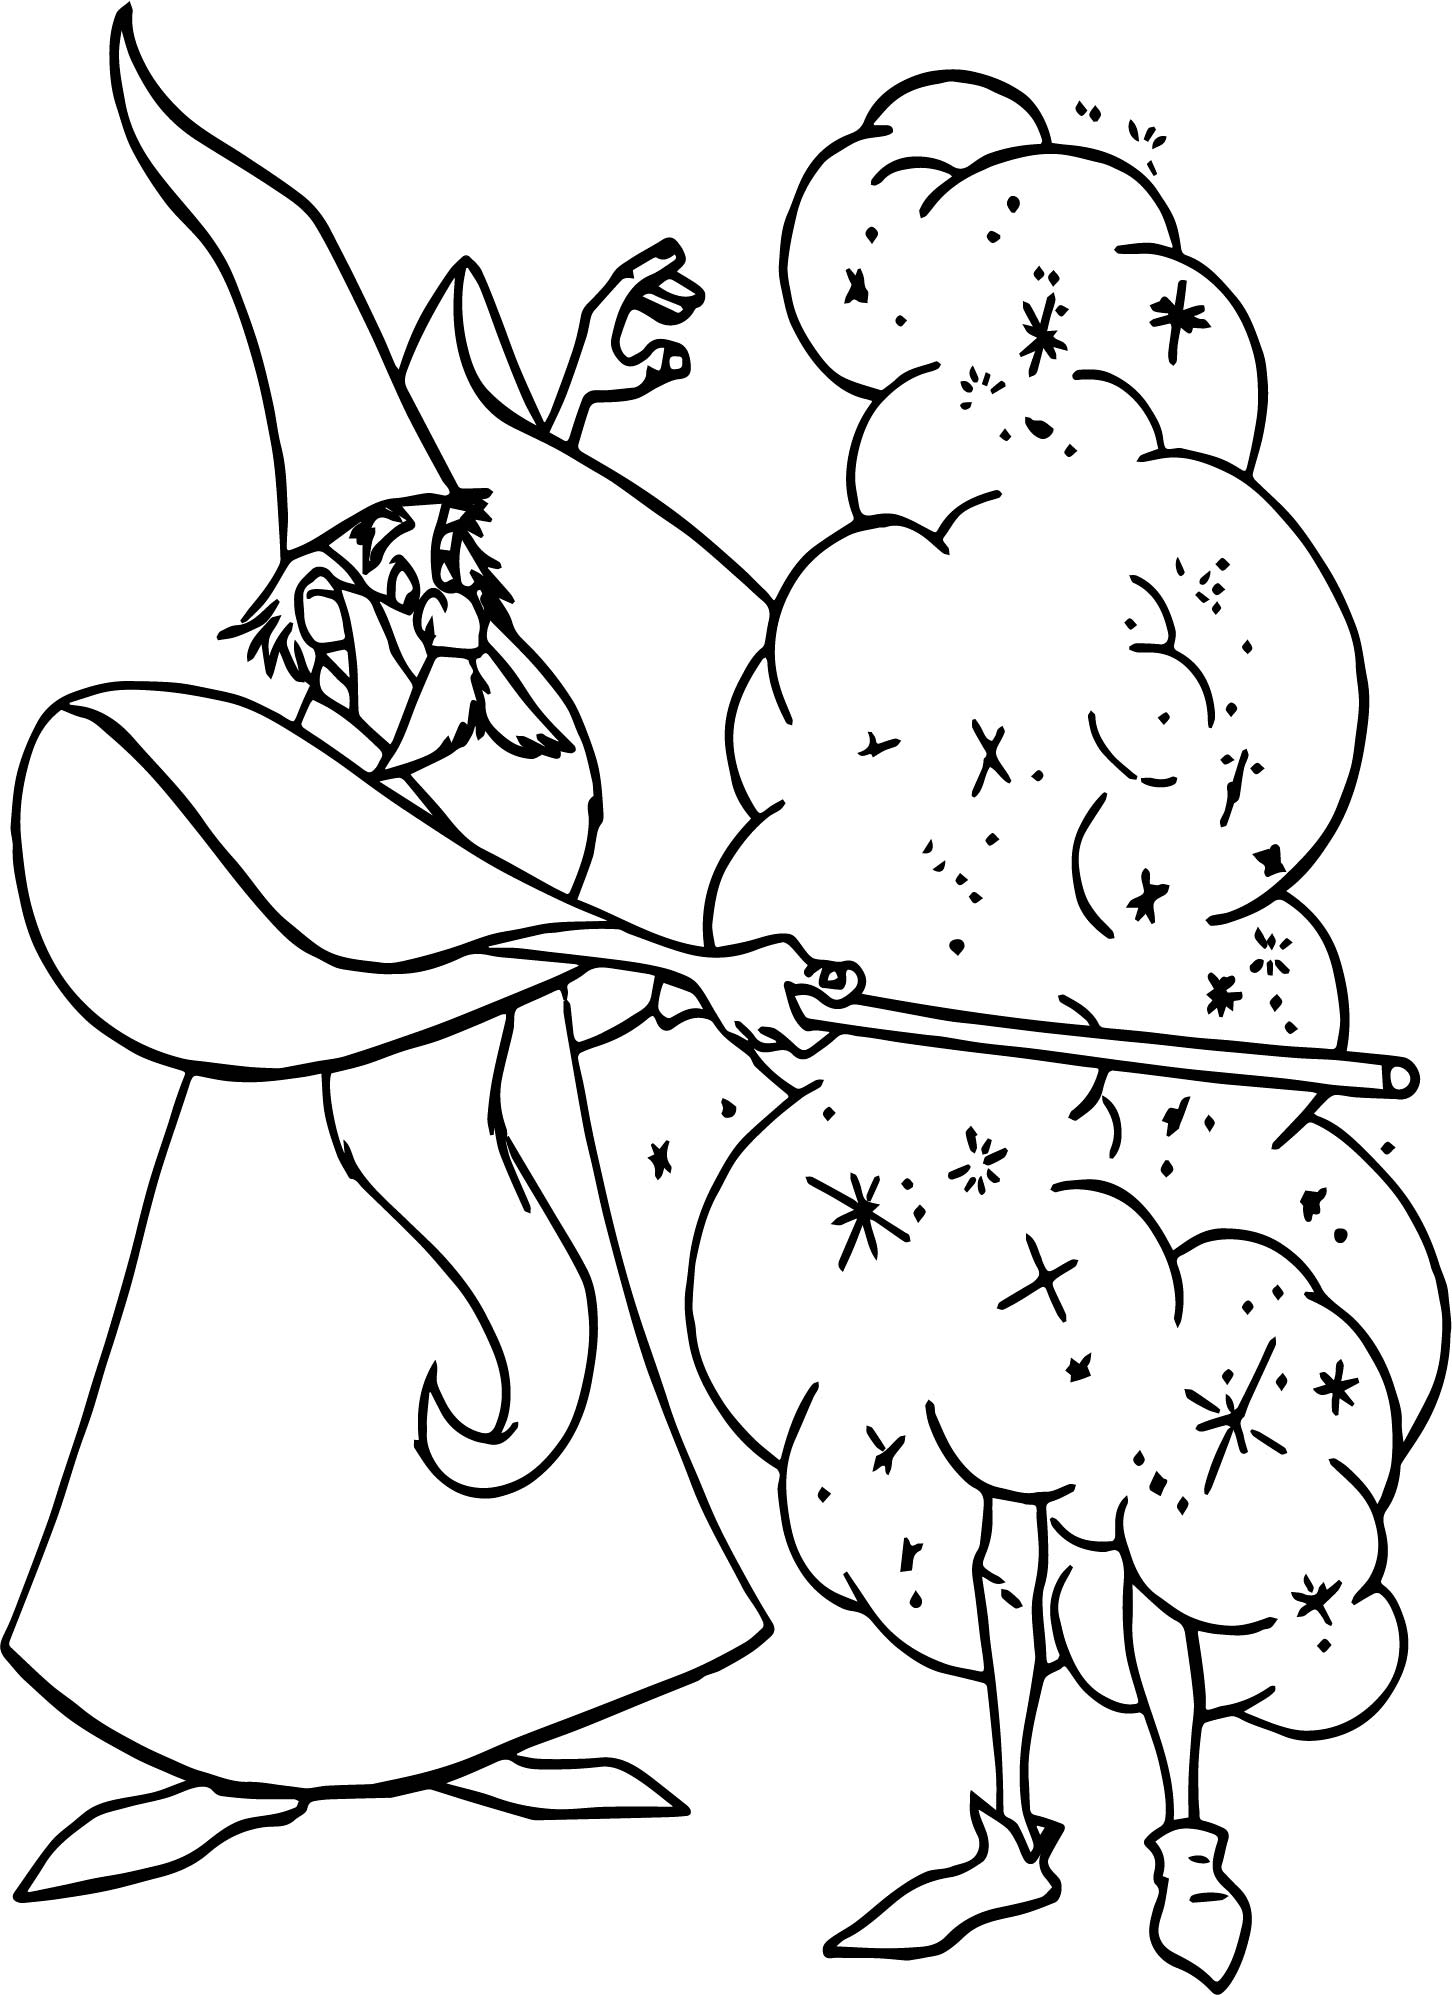 Merlin New Magic Coloring Page